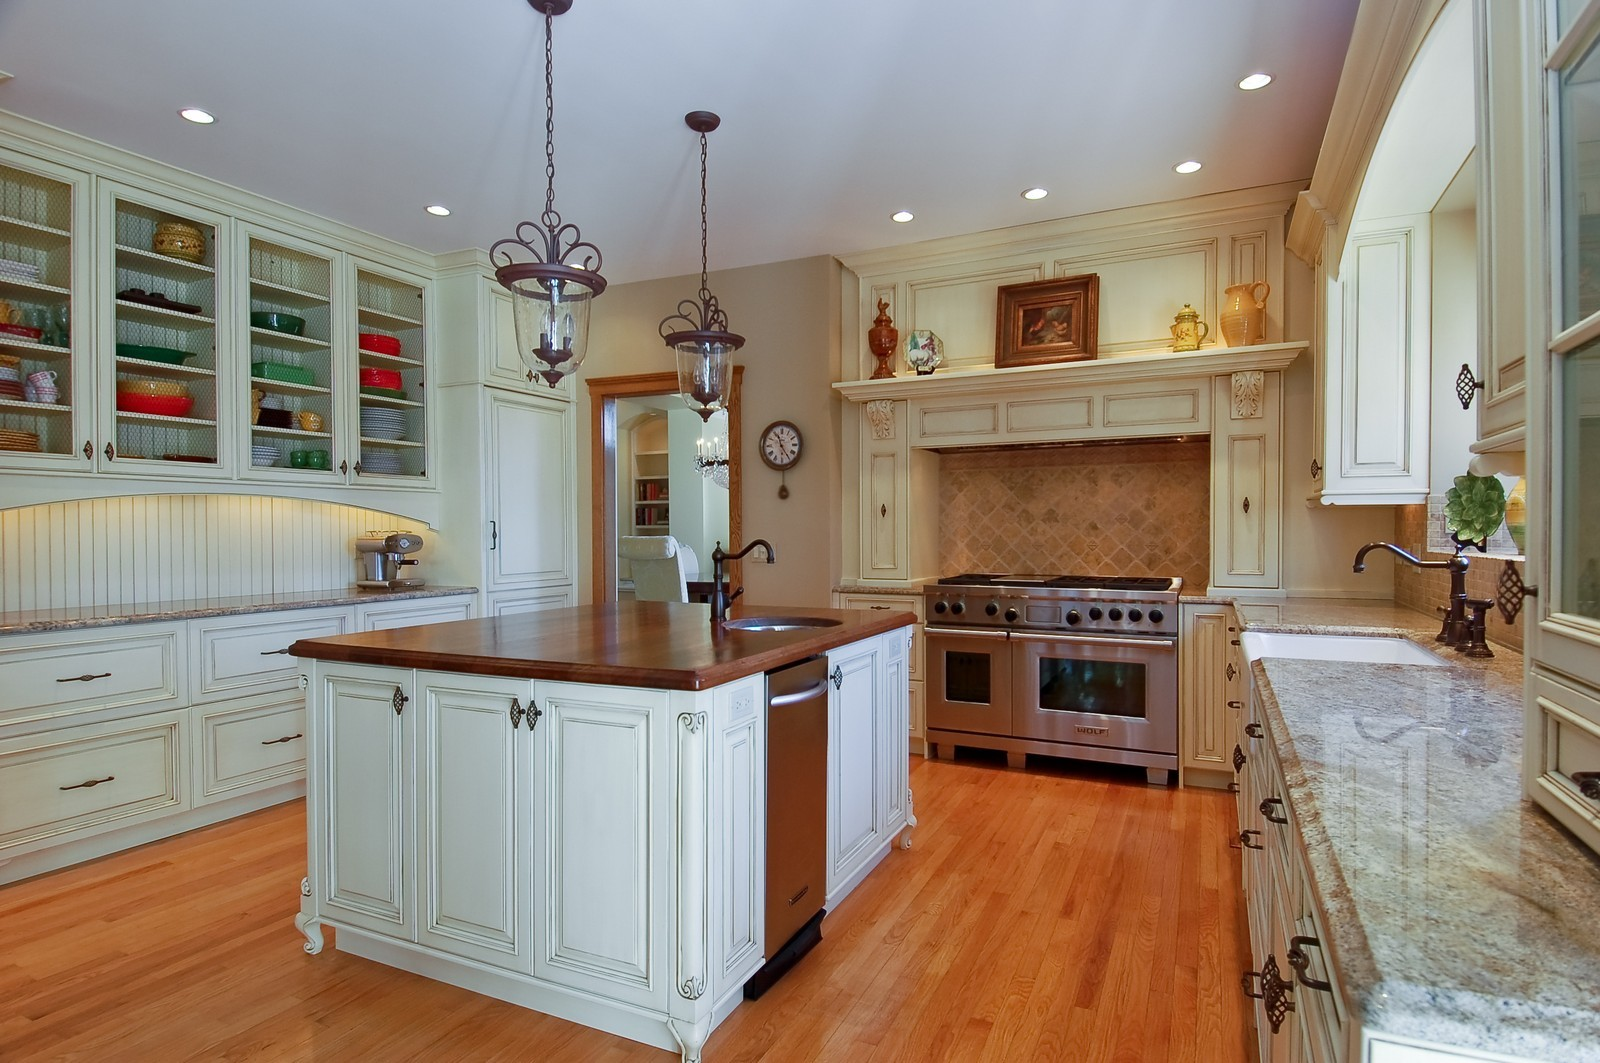 Real Estate Photography - 1492 Lloyd, Wheaton, IL, 60189 - Kitchen